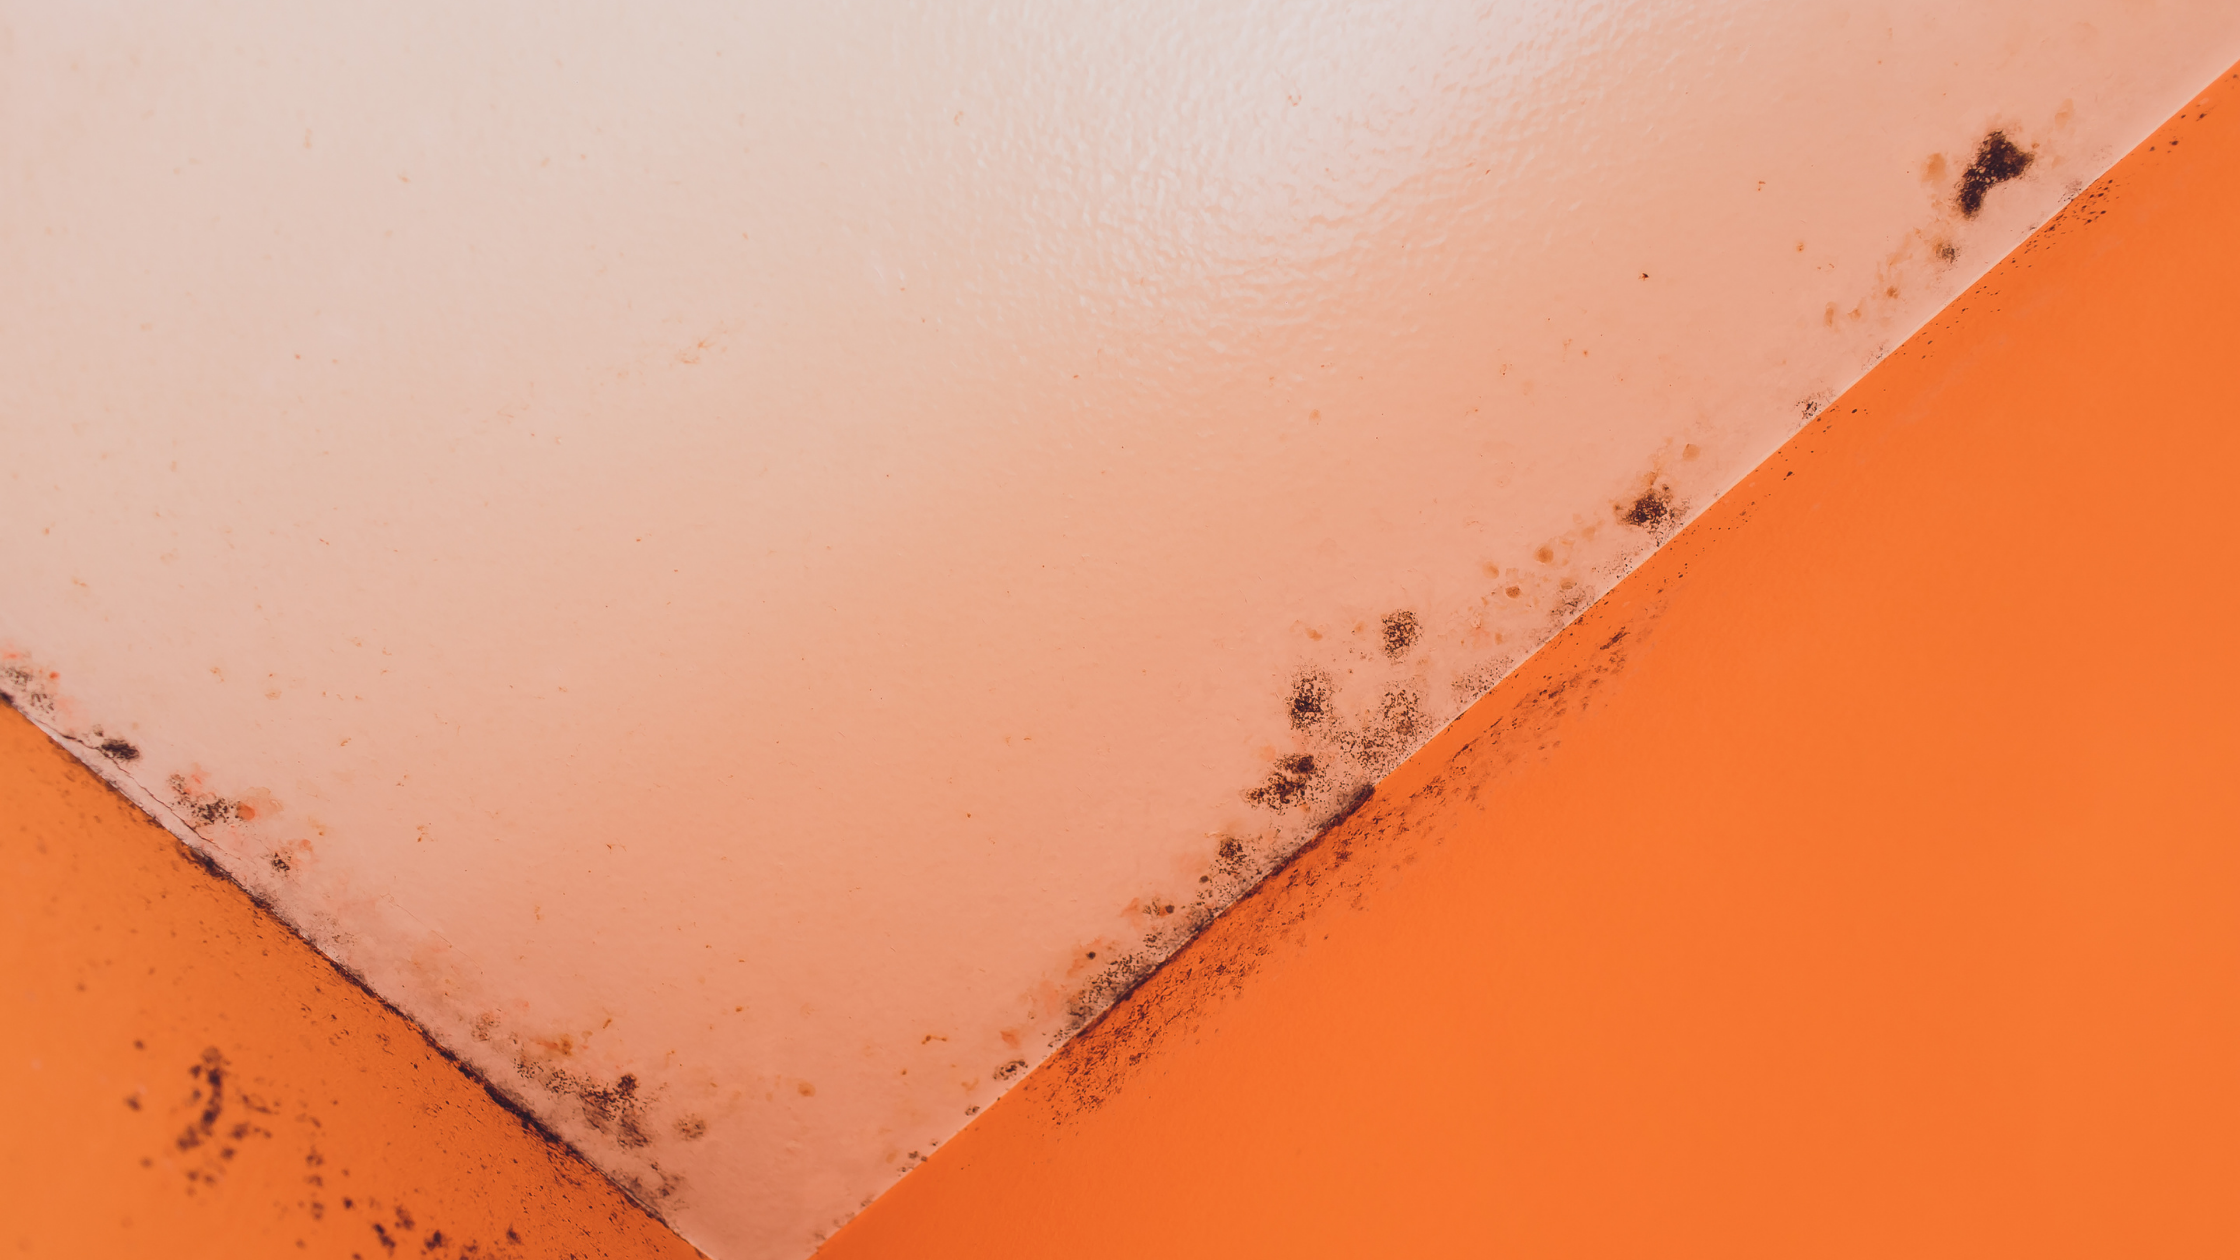 mold damage providence. Hire a public adjuster in Coventry, RI to help fix any mold damage